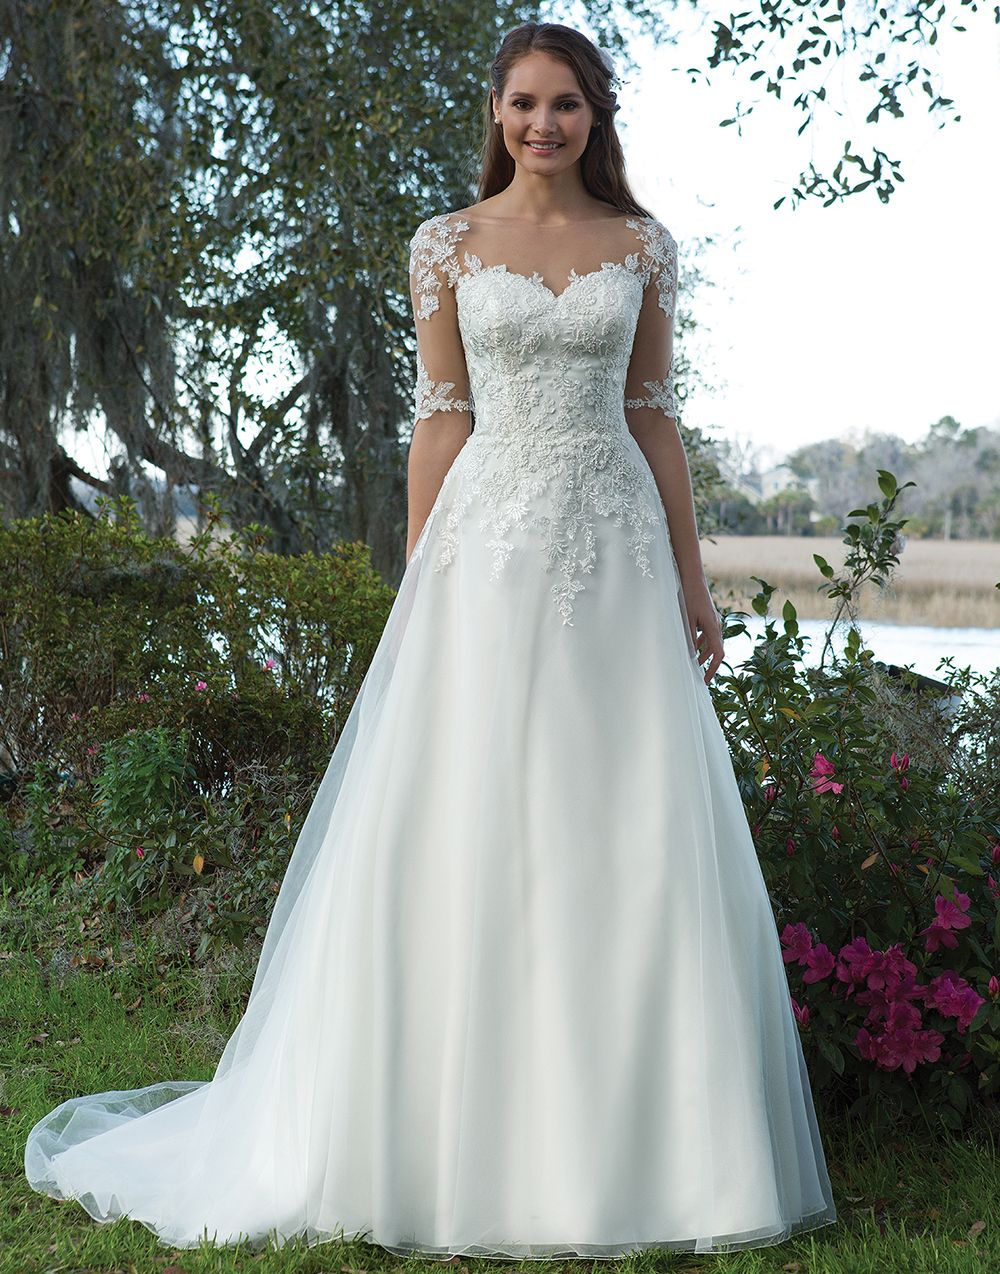 Sweetheart Gowns 6191 Ivory/Nude Size 20 Say yes to sleeves. An ...